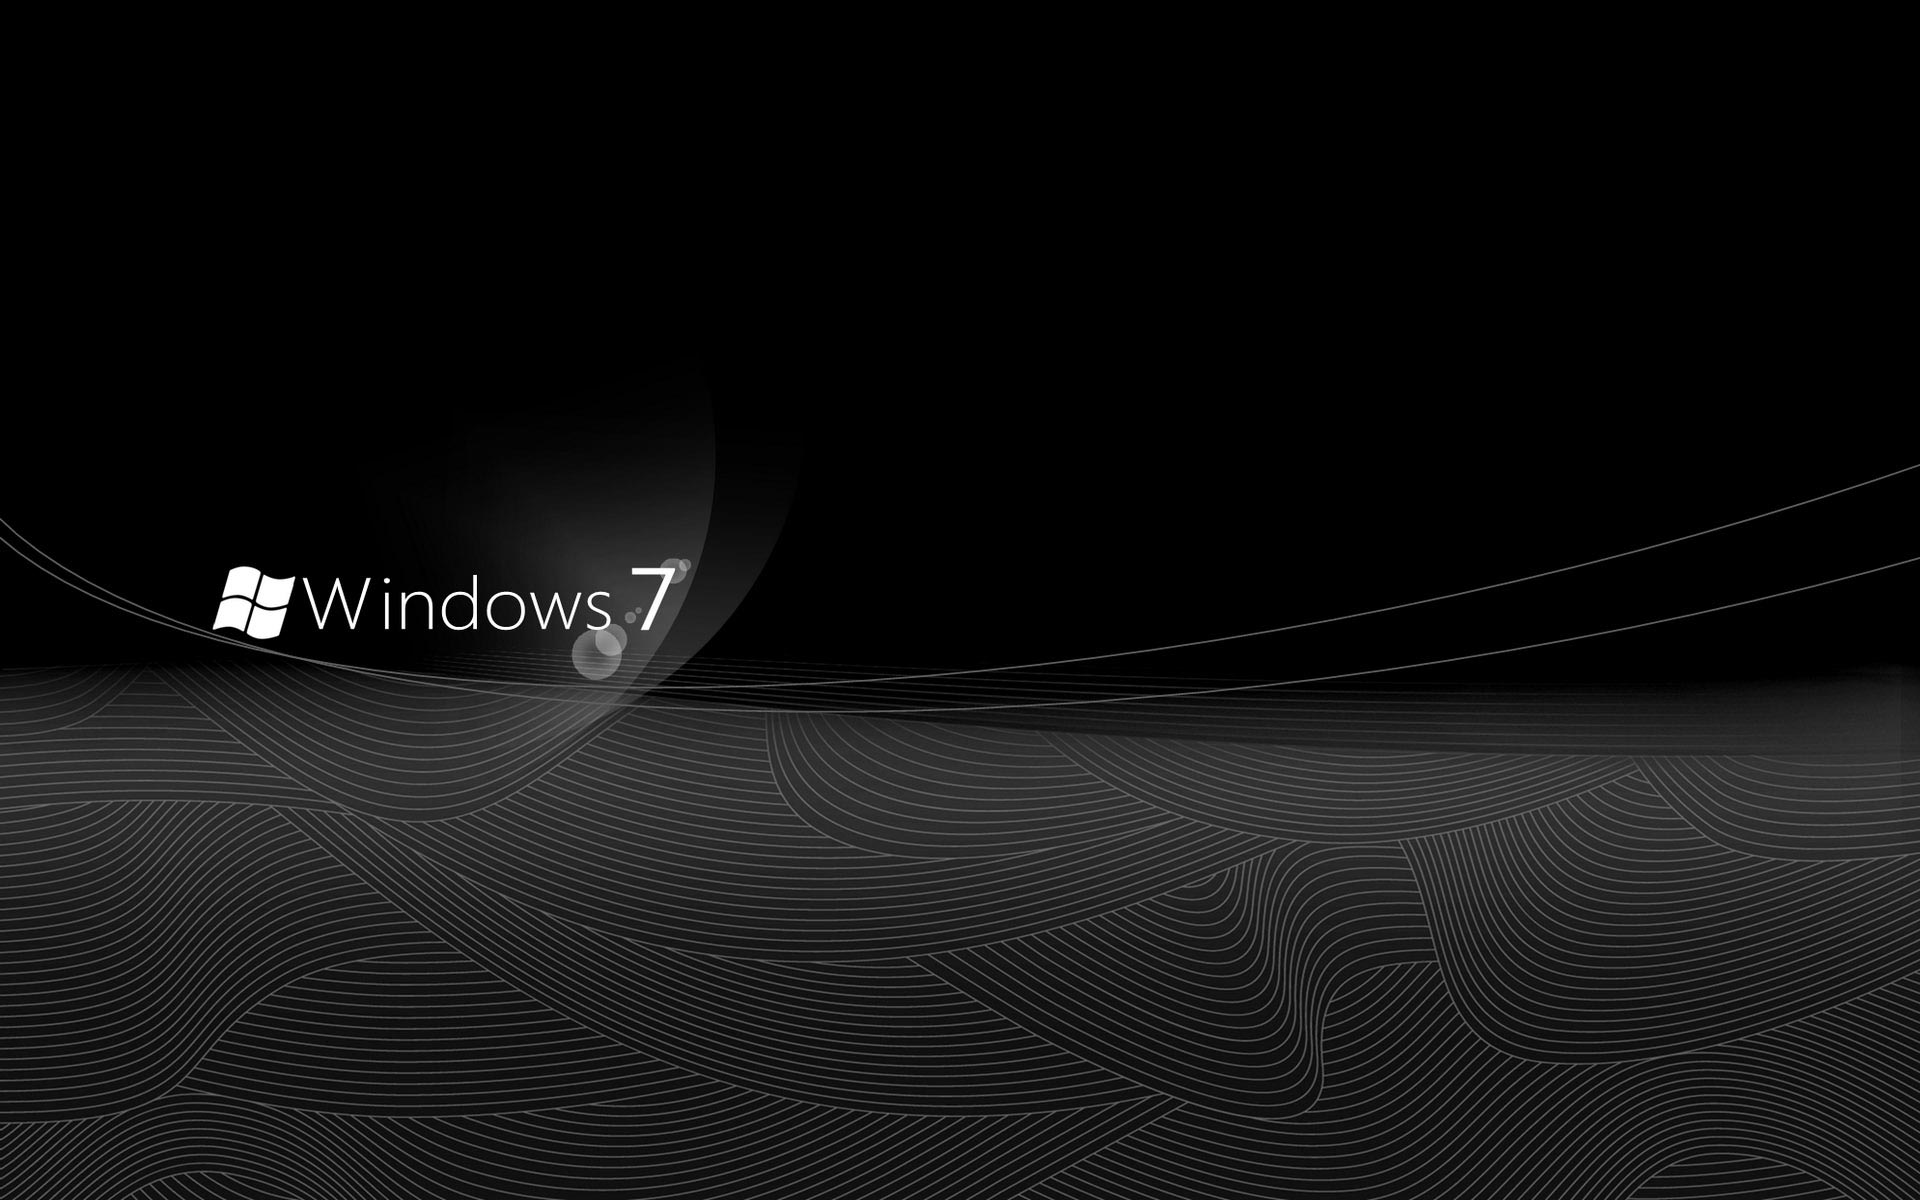 Dark Windows 7 Wallpaper